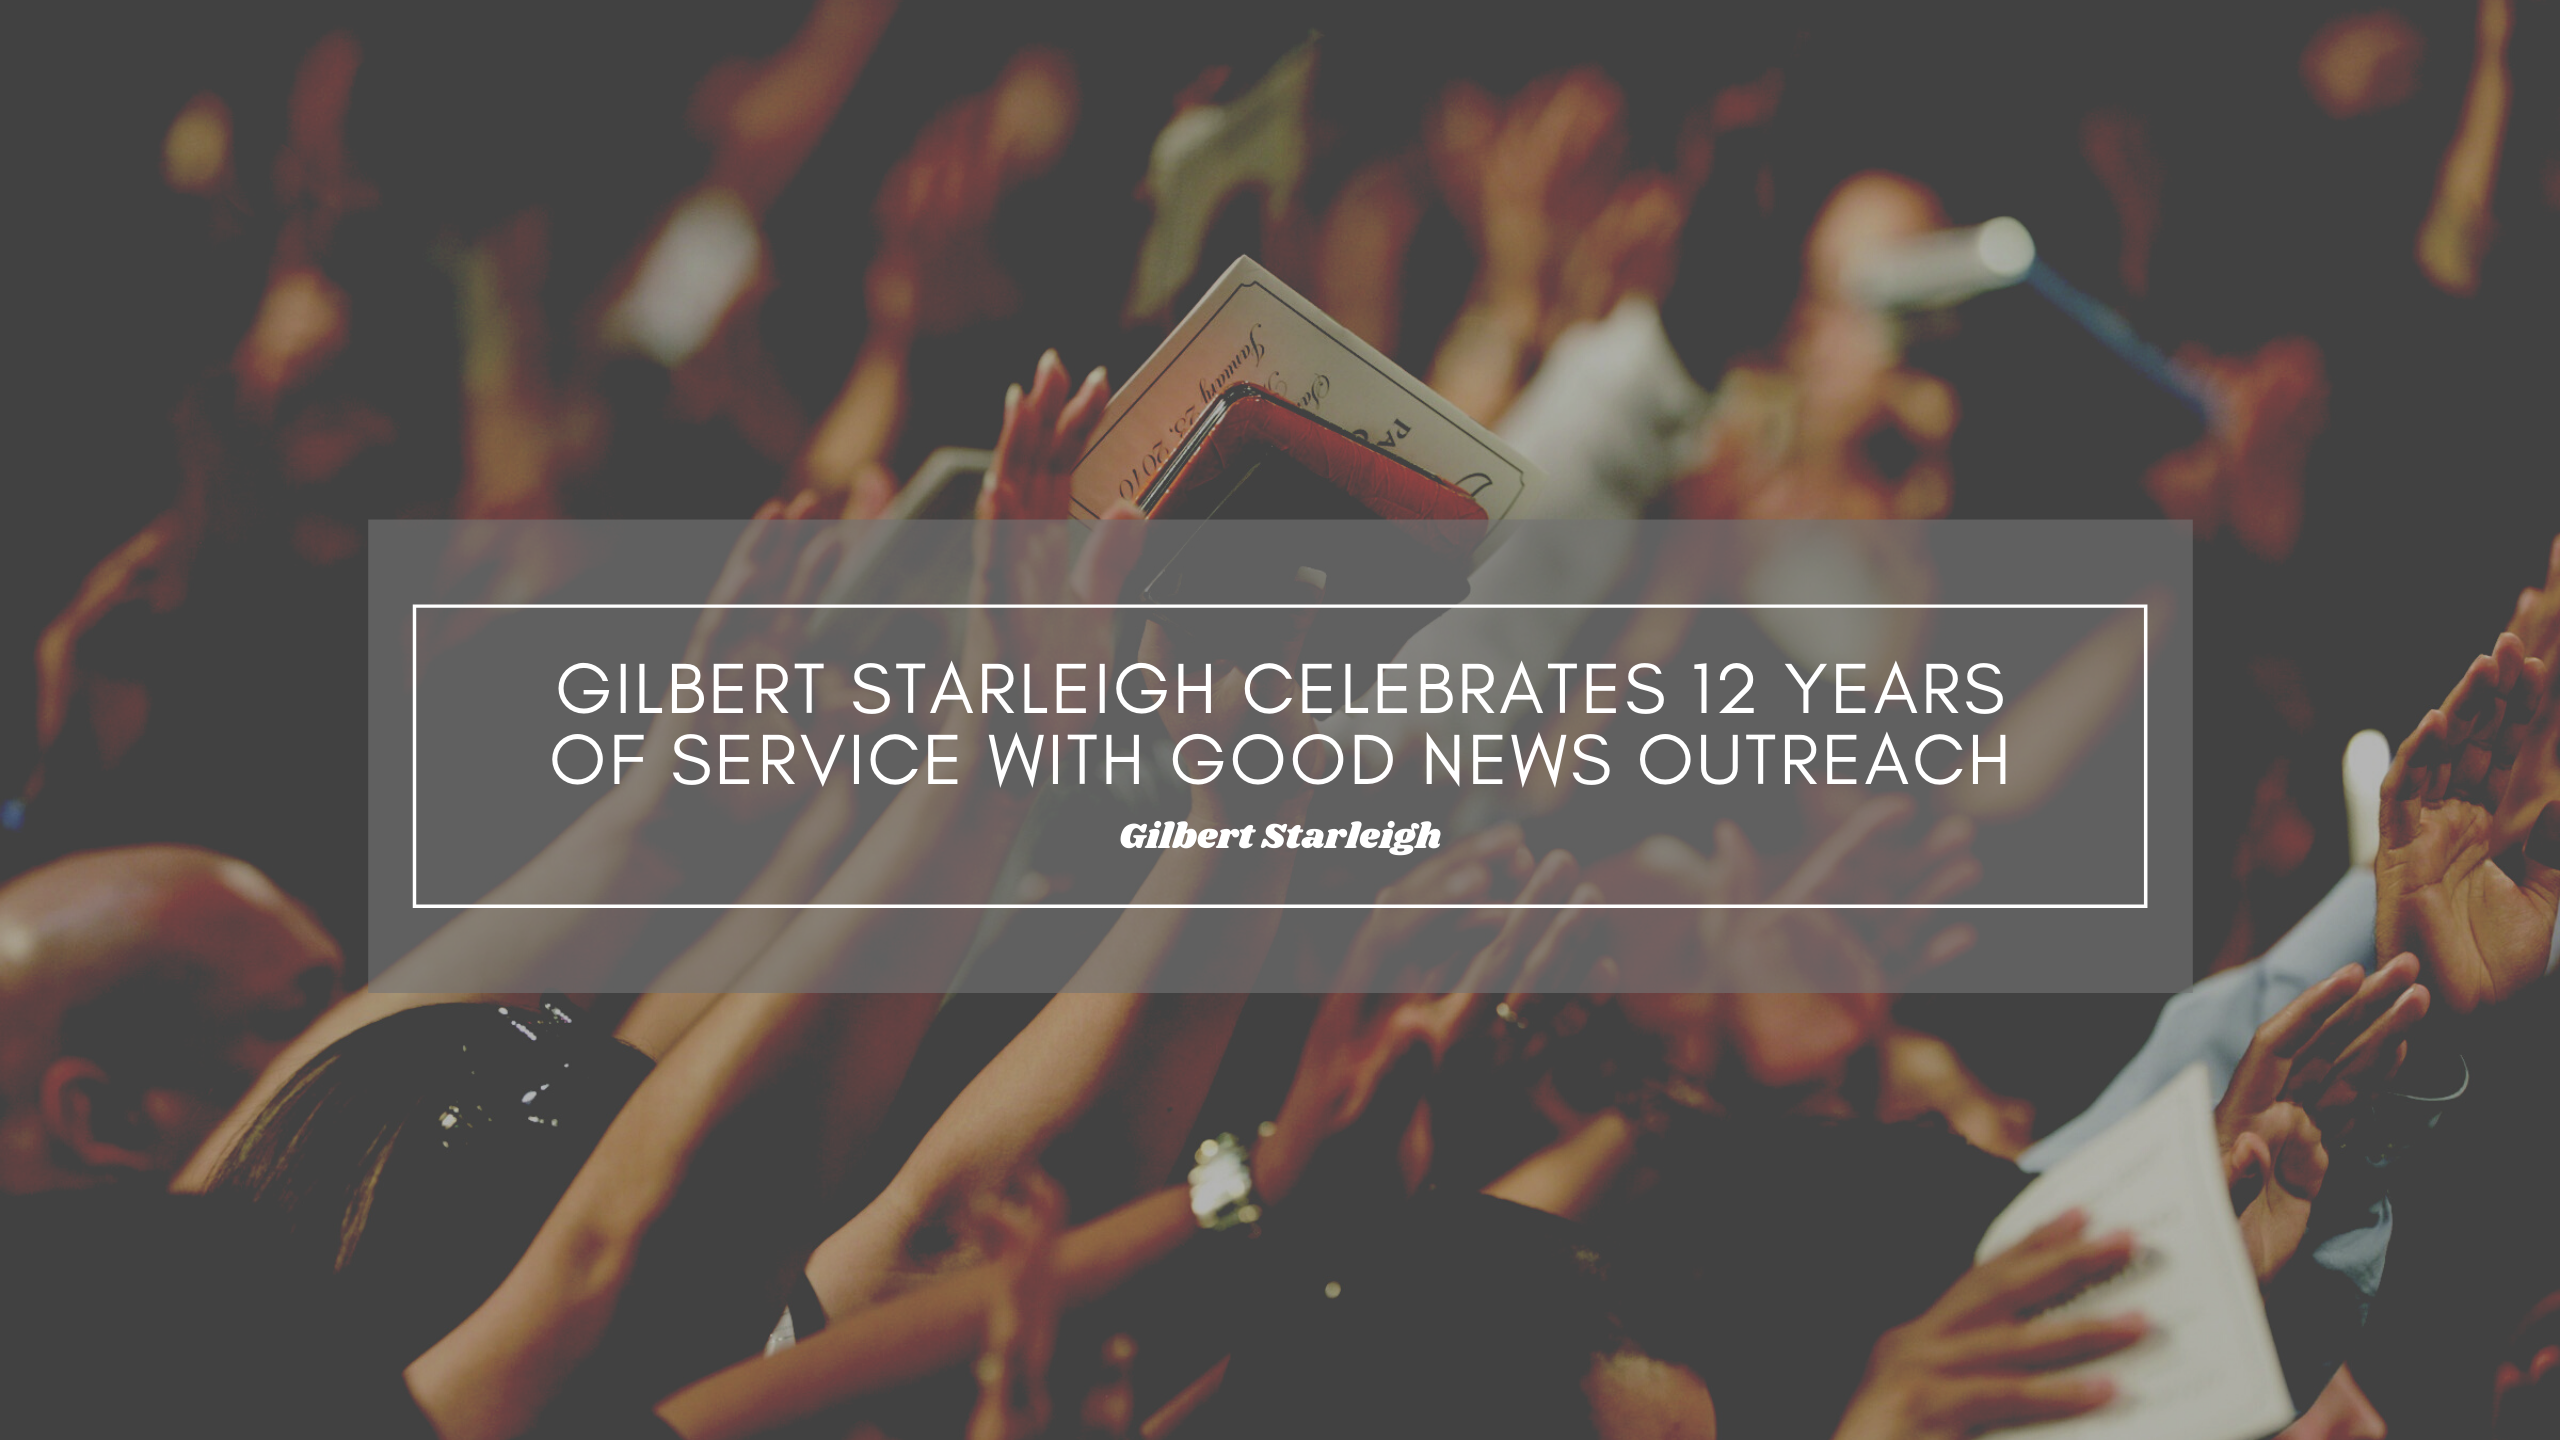 Gilbert Starleigh Celebrates 12 Years of Service With Good News Outreach